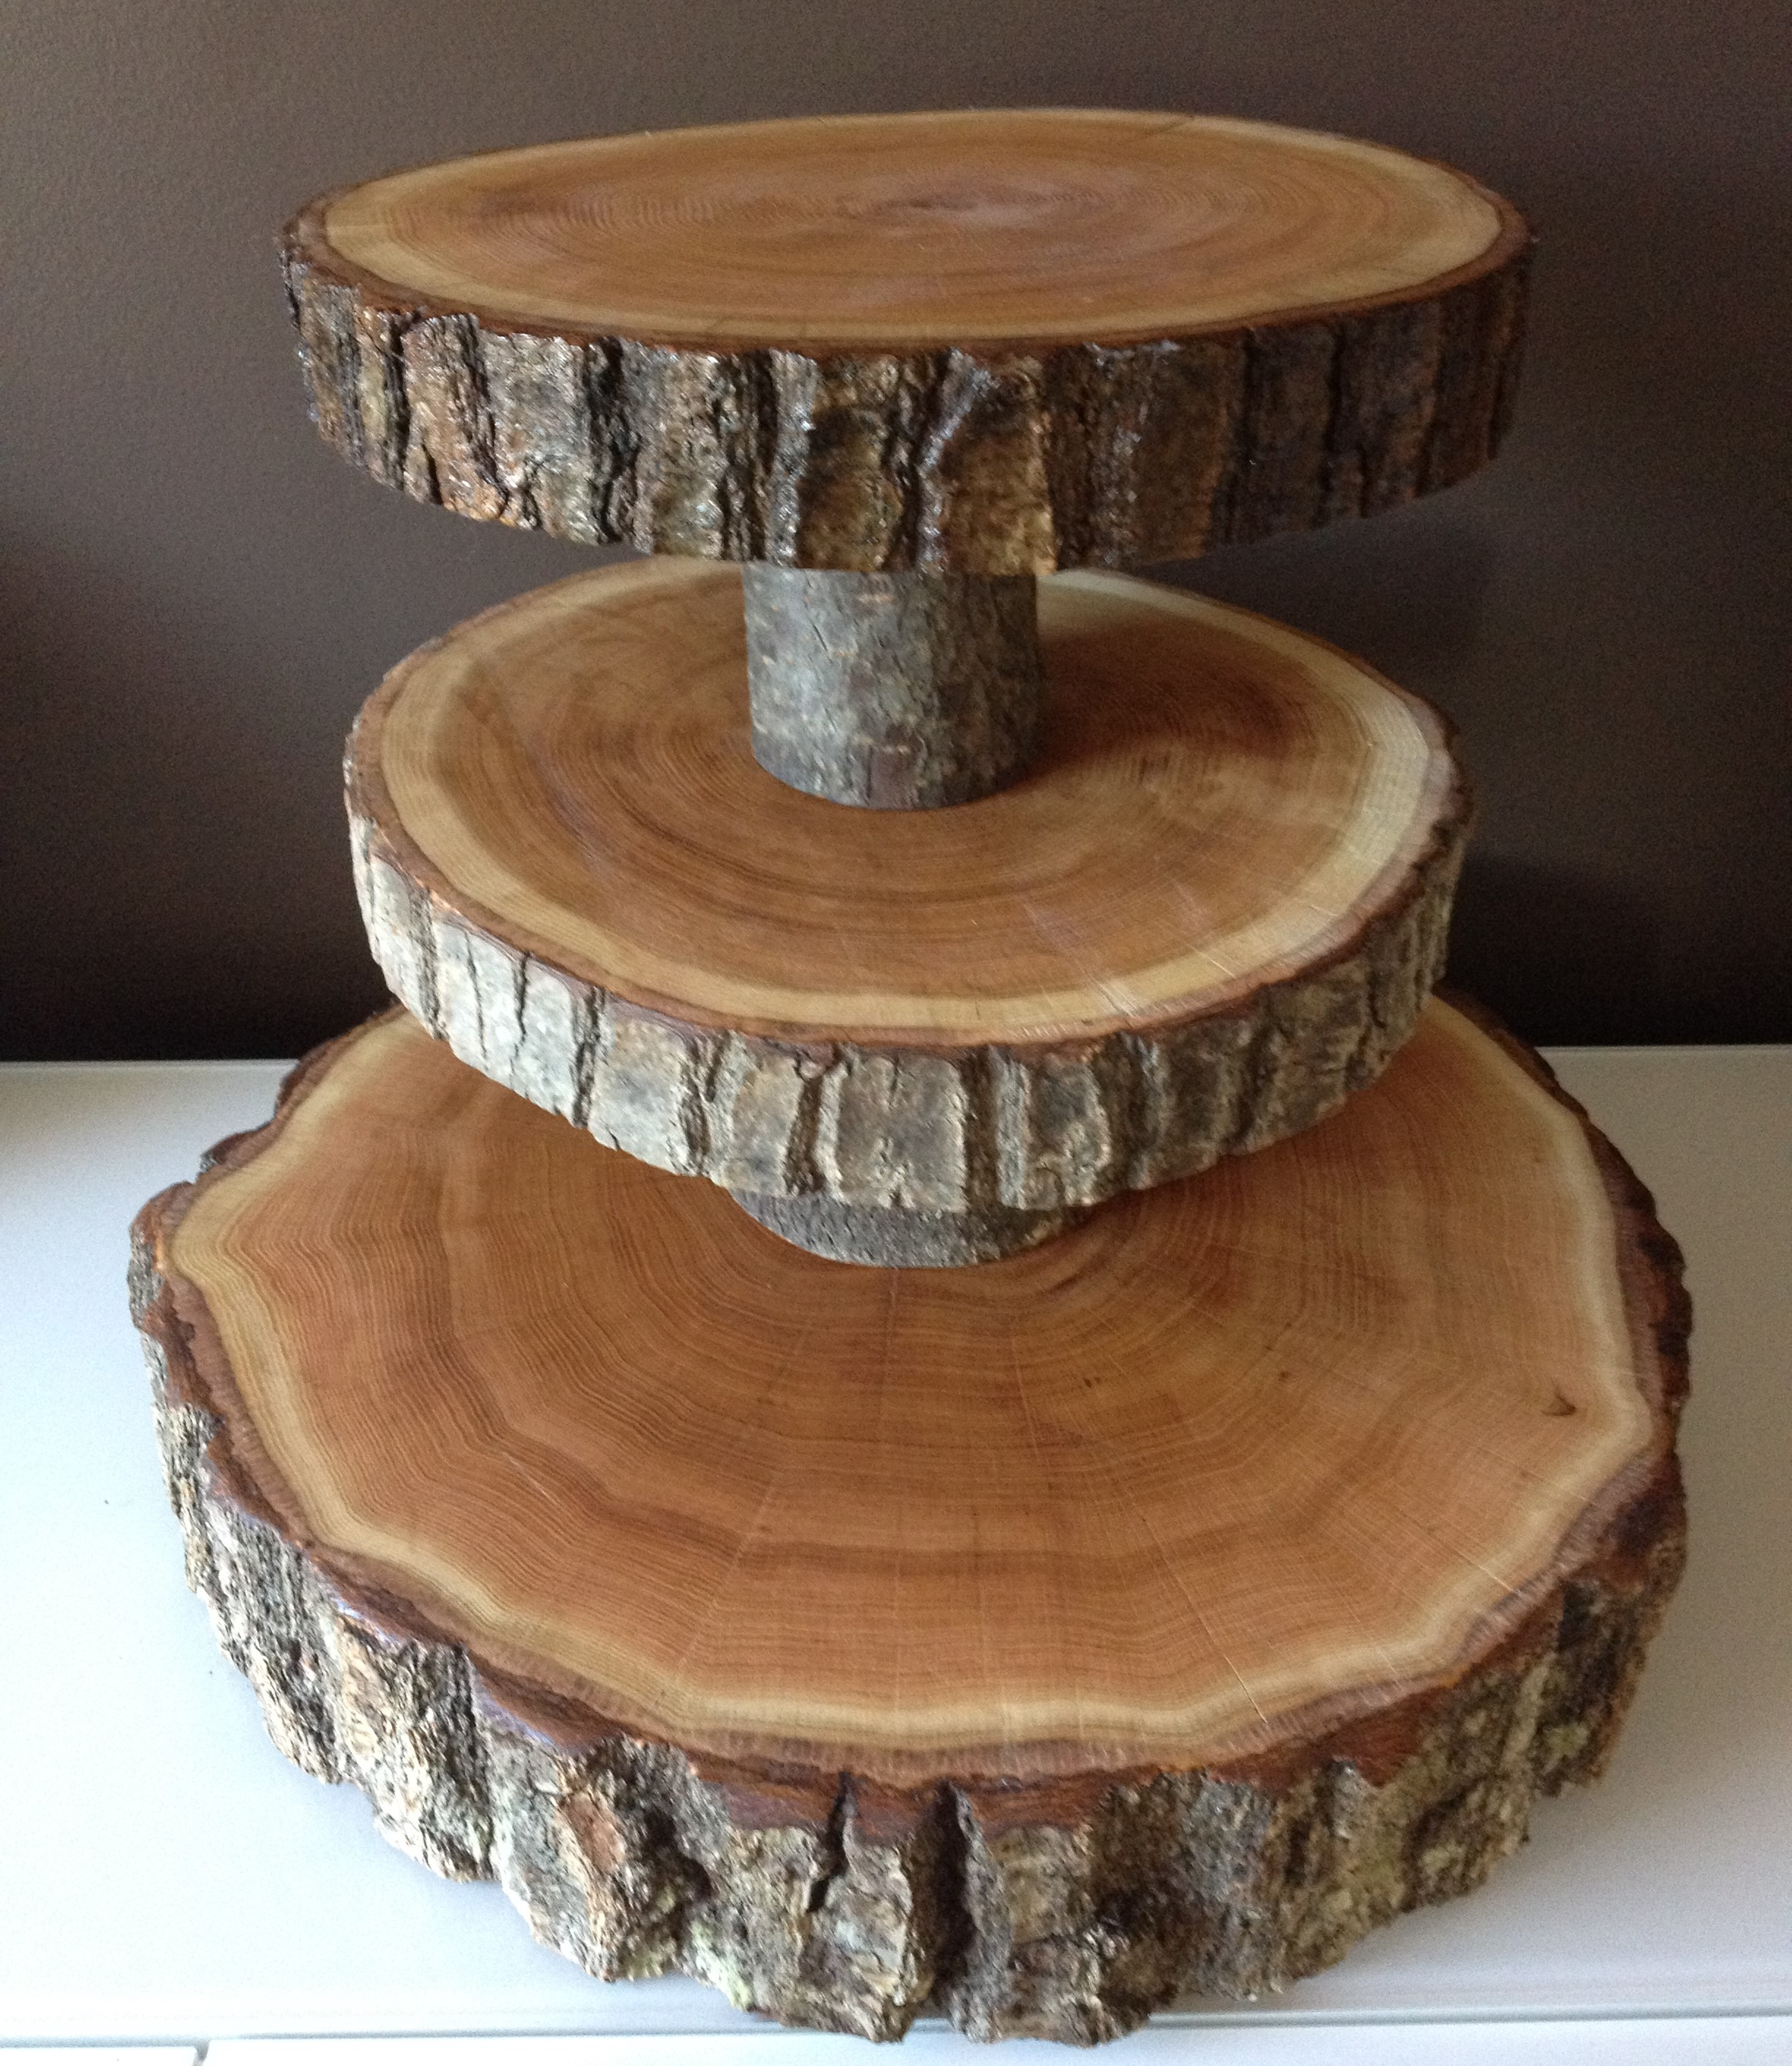 wooden cake stands for wedding cakes wood slice wedding cake stands wood rounds stump cake stand 27589